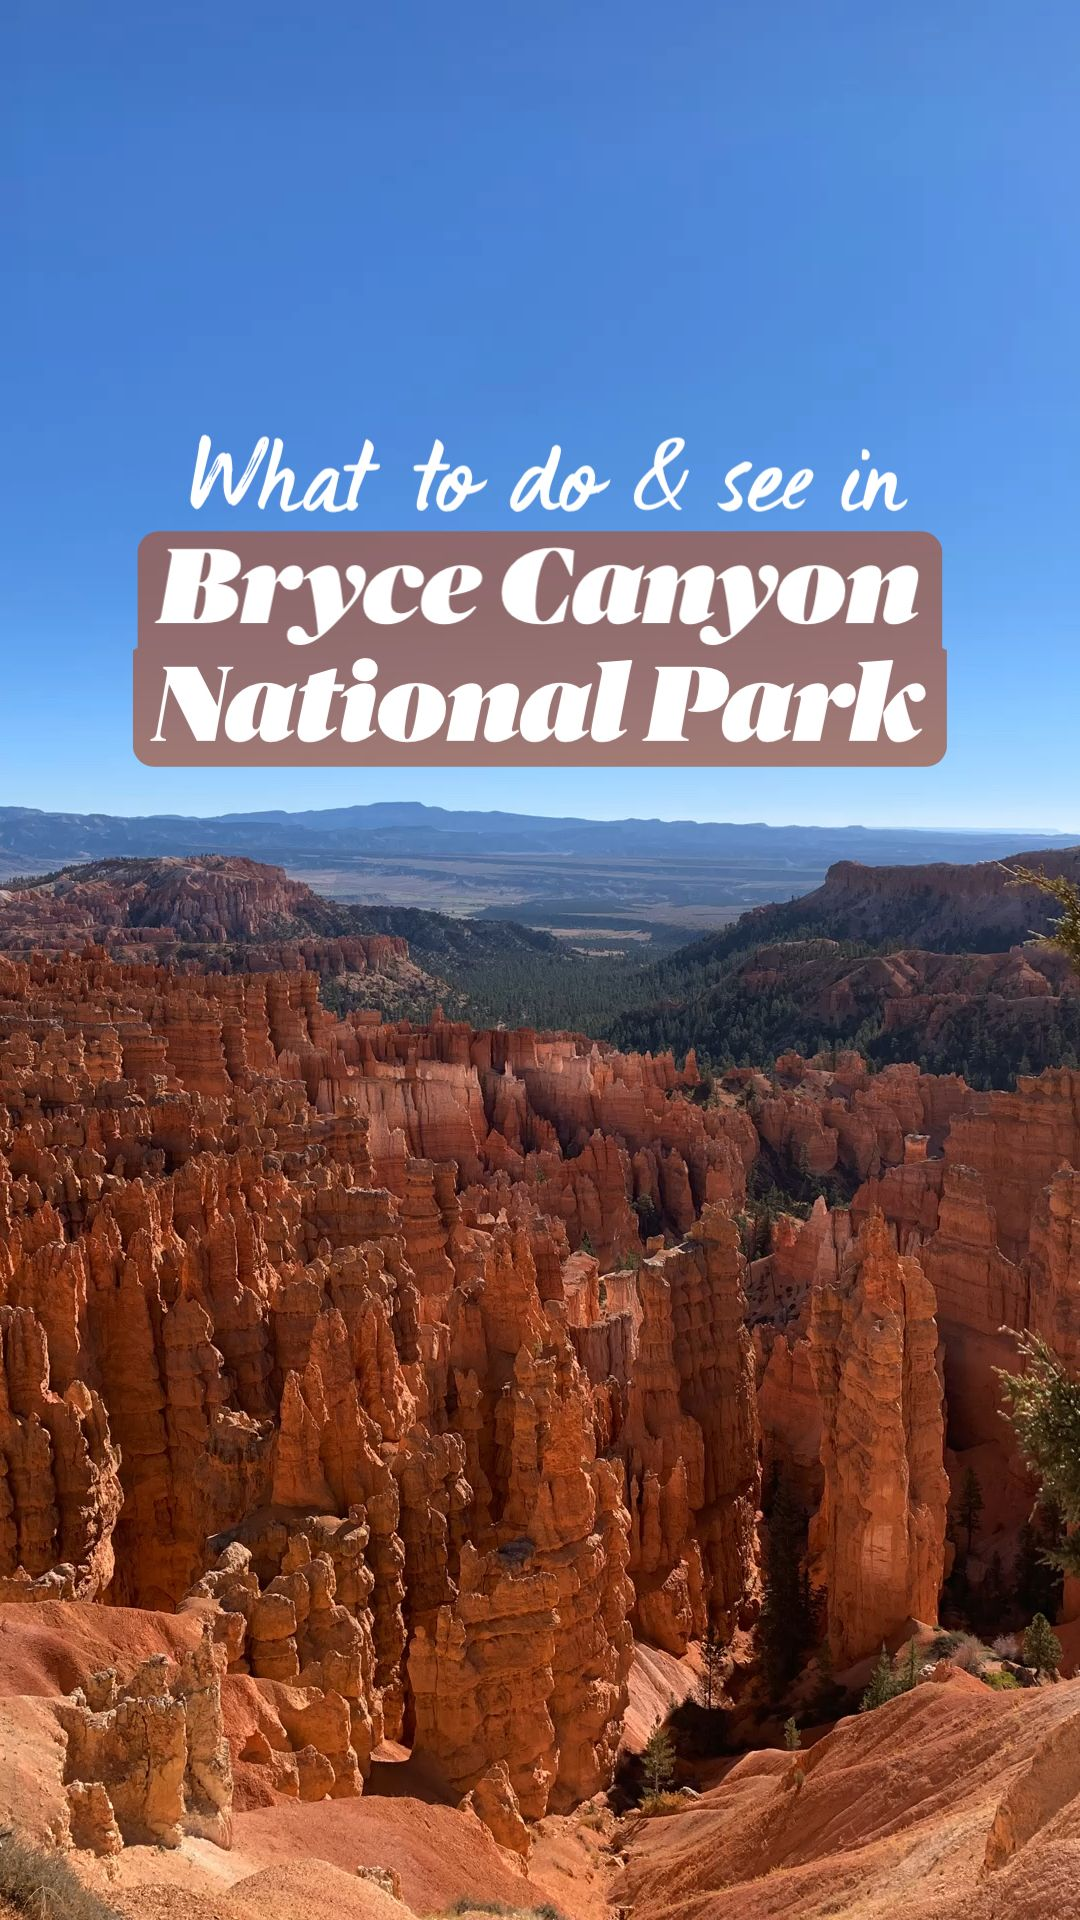 What to do & see in Bryce Canyon National Park